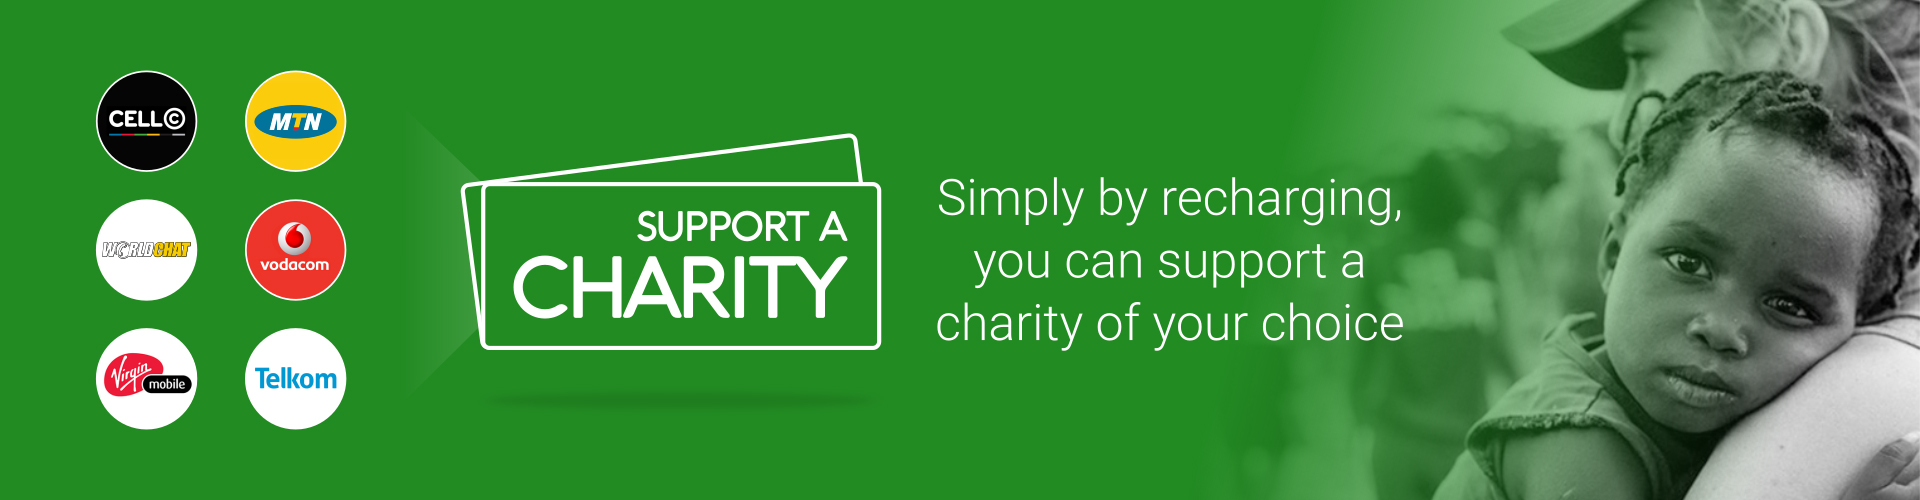 Charity Airtime - Buy airtime to support a charity